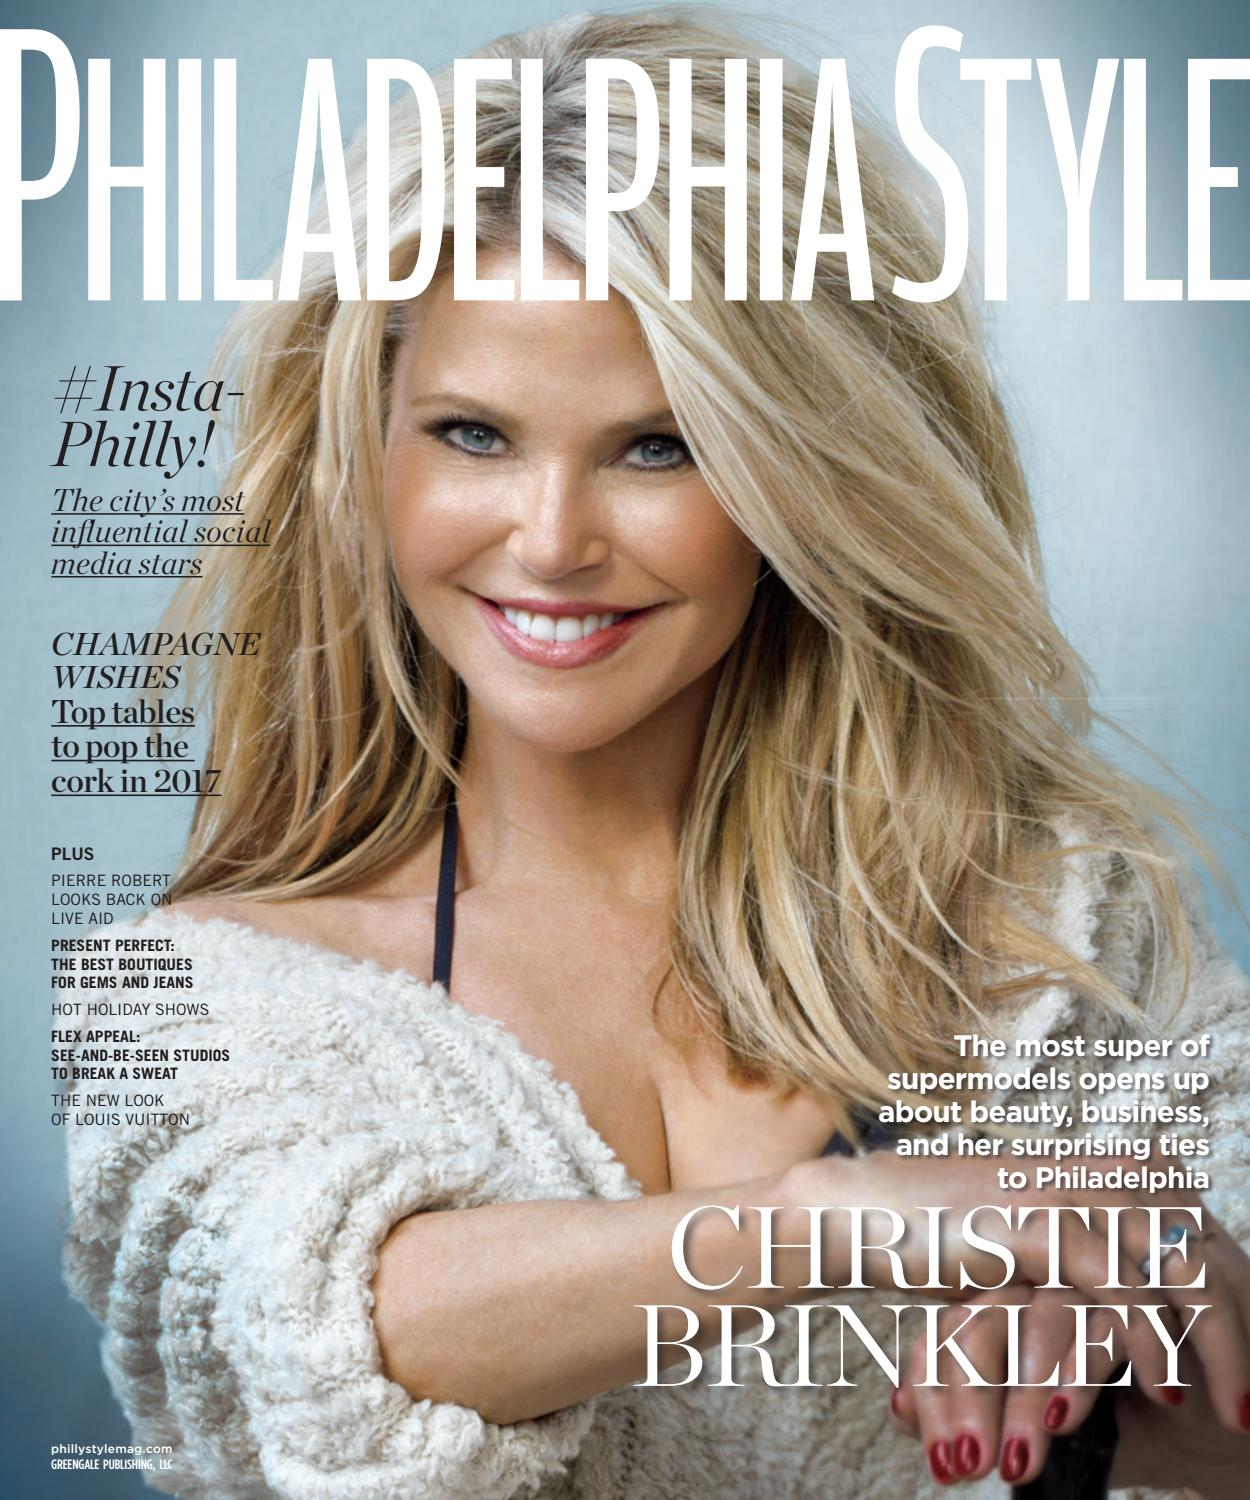 philadelphia style 2016 issue 6 winter christie brinkley